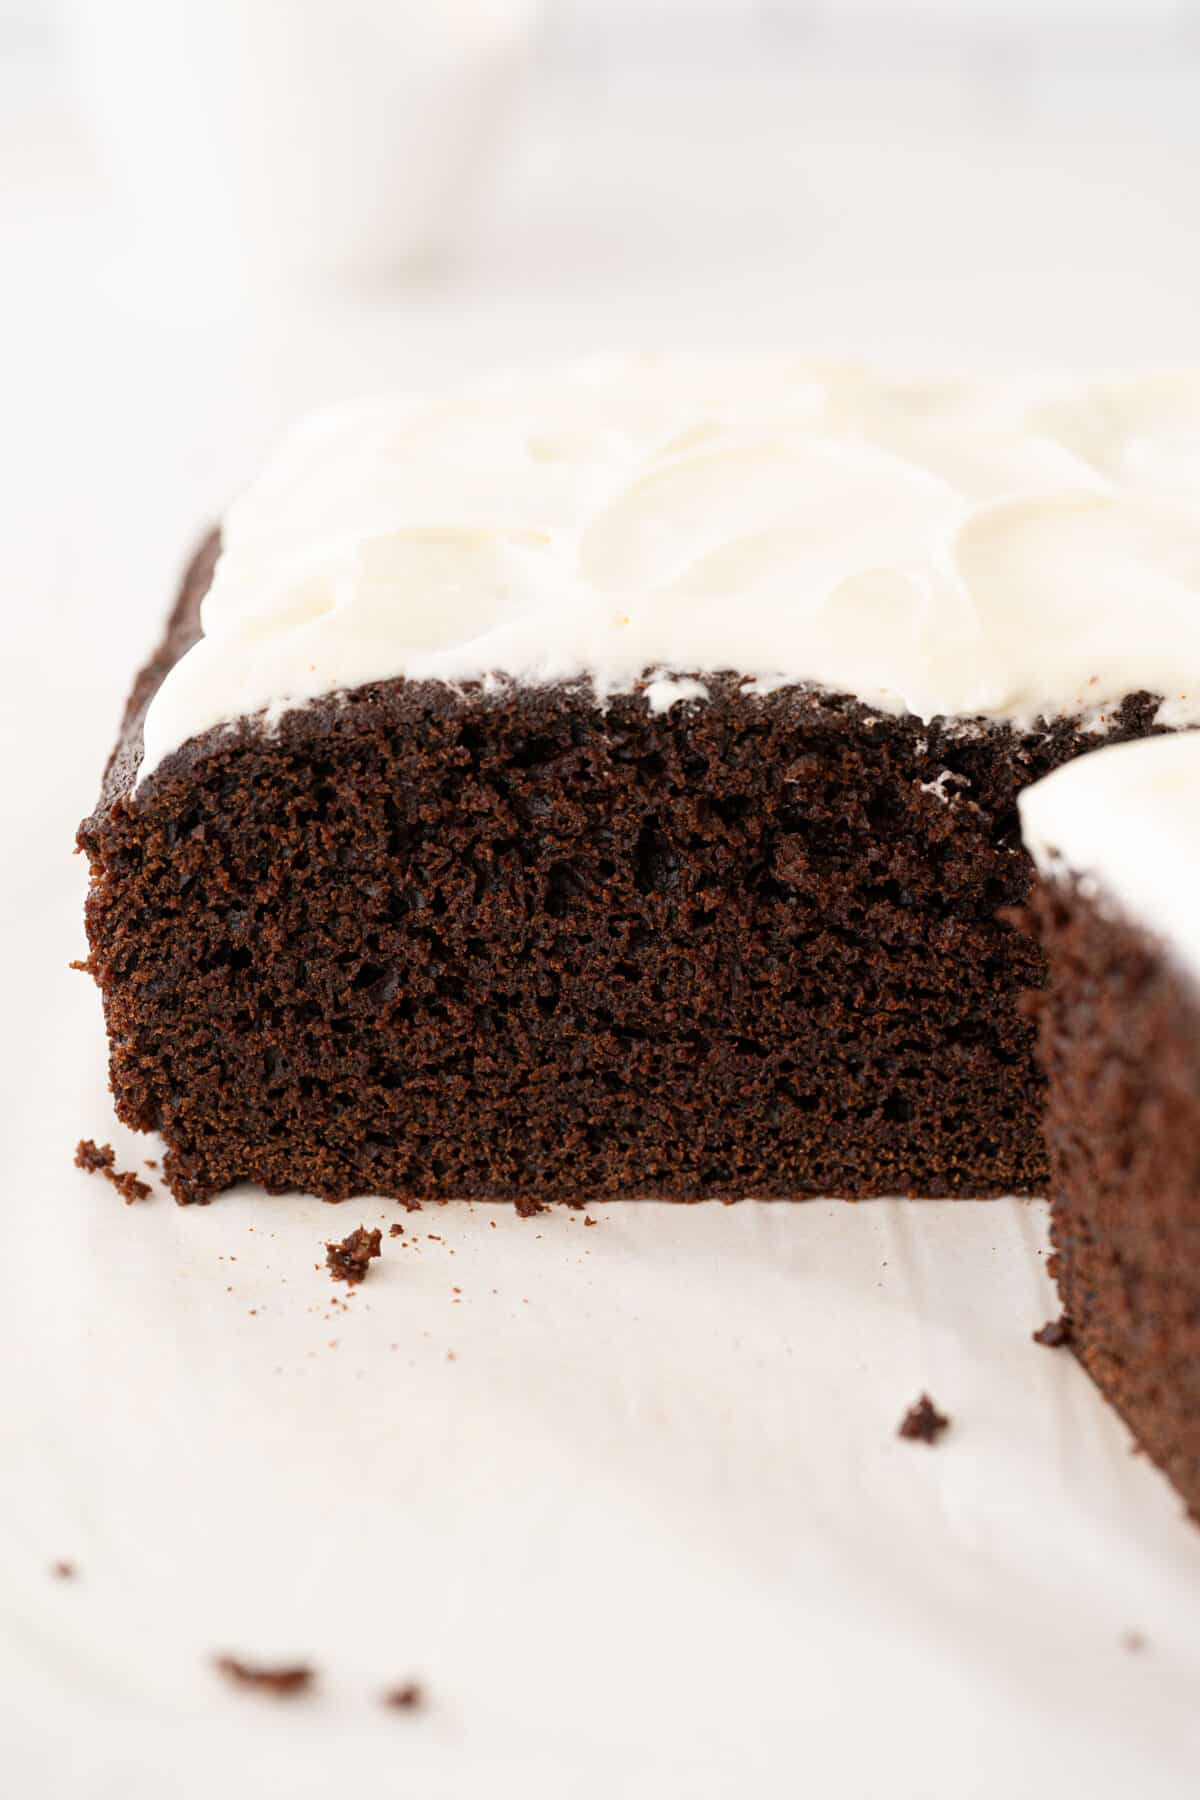 large slice of chocolate cake with buttercream frosting